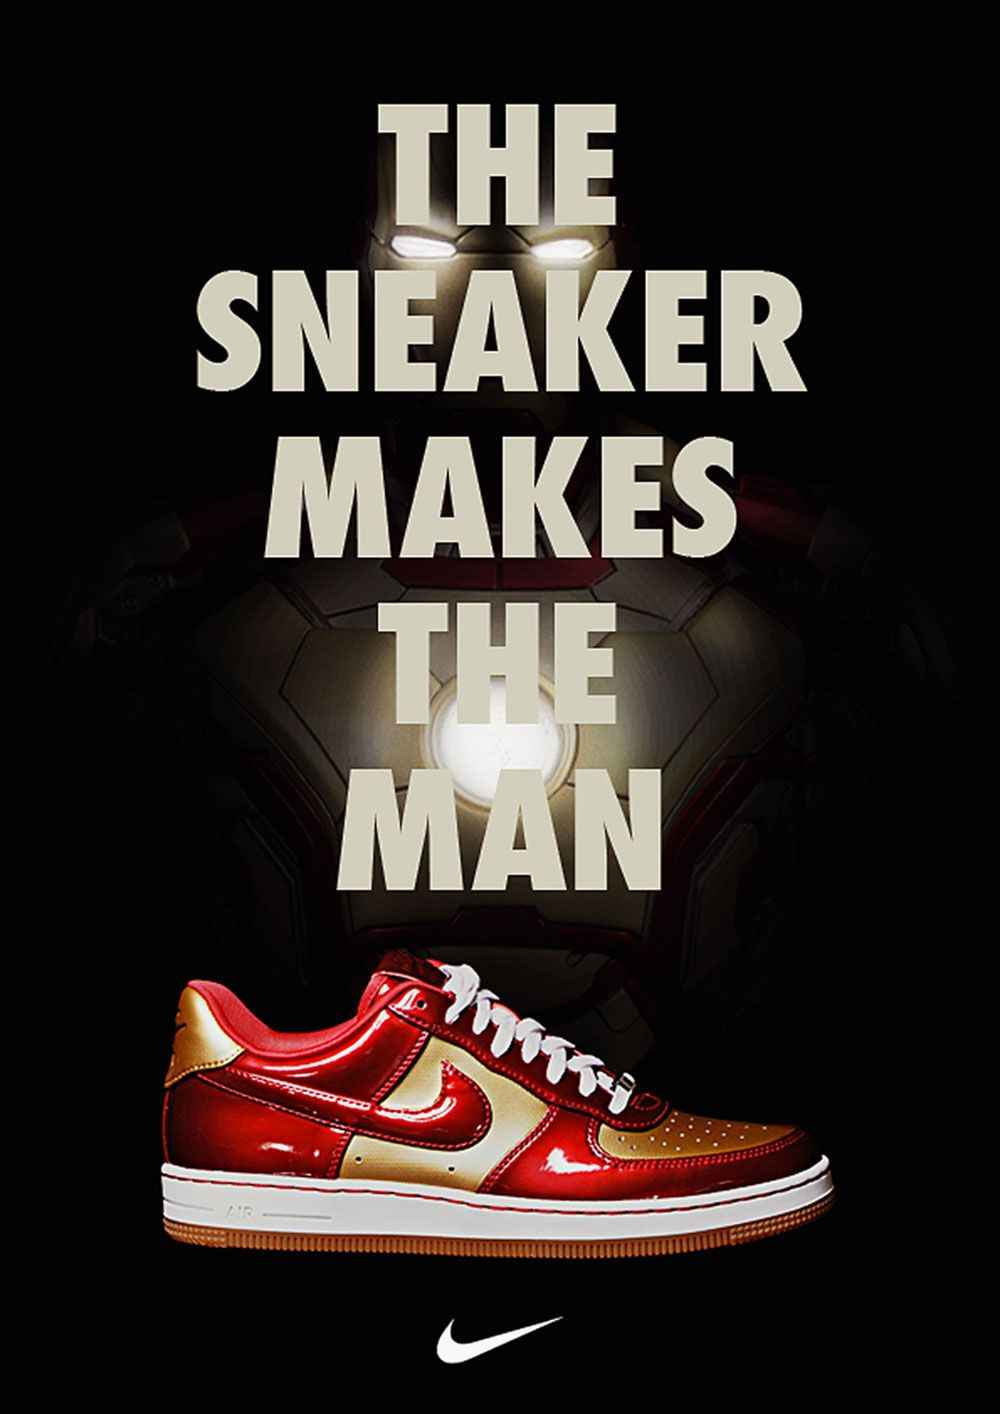 The sneaker makes the man